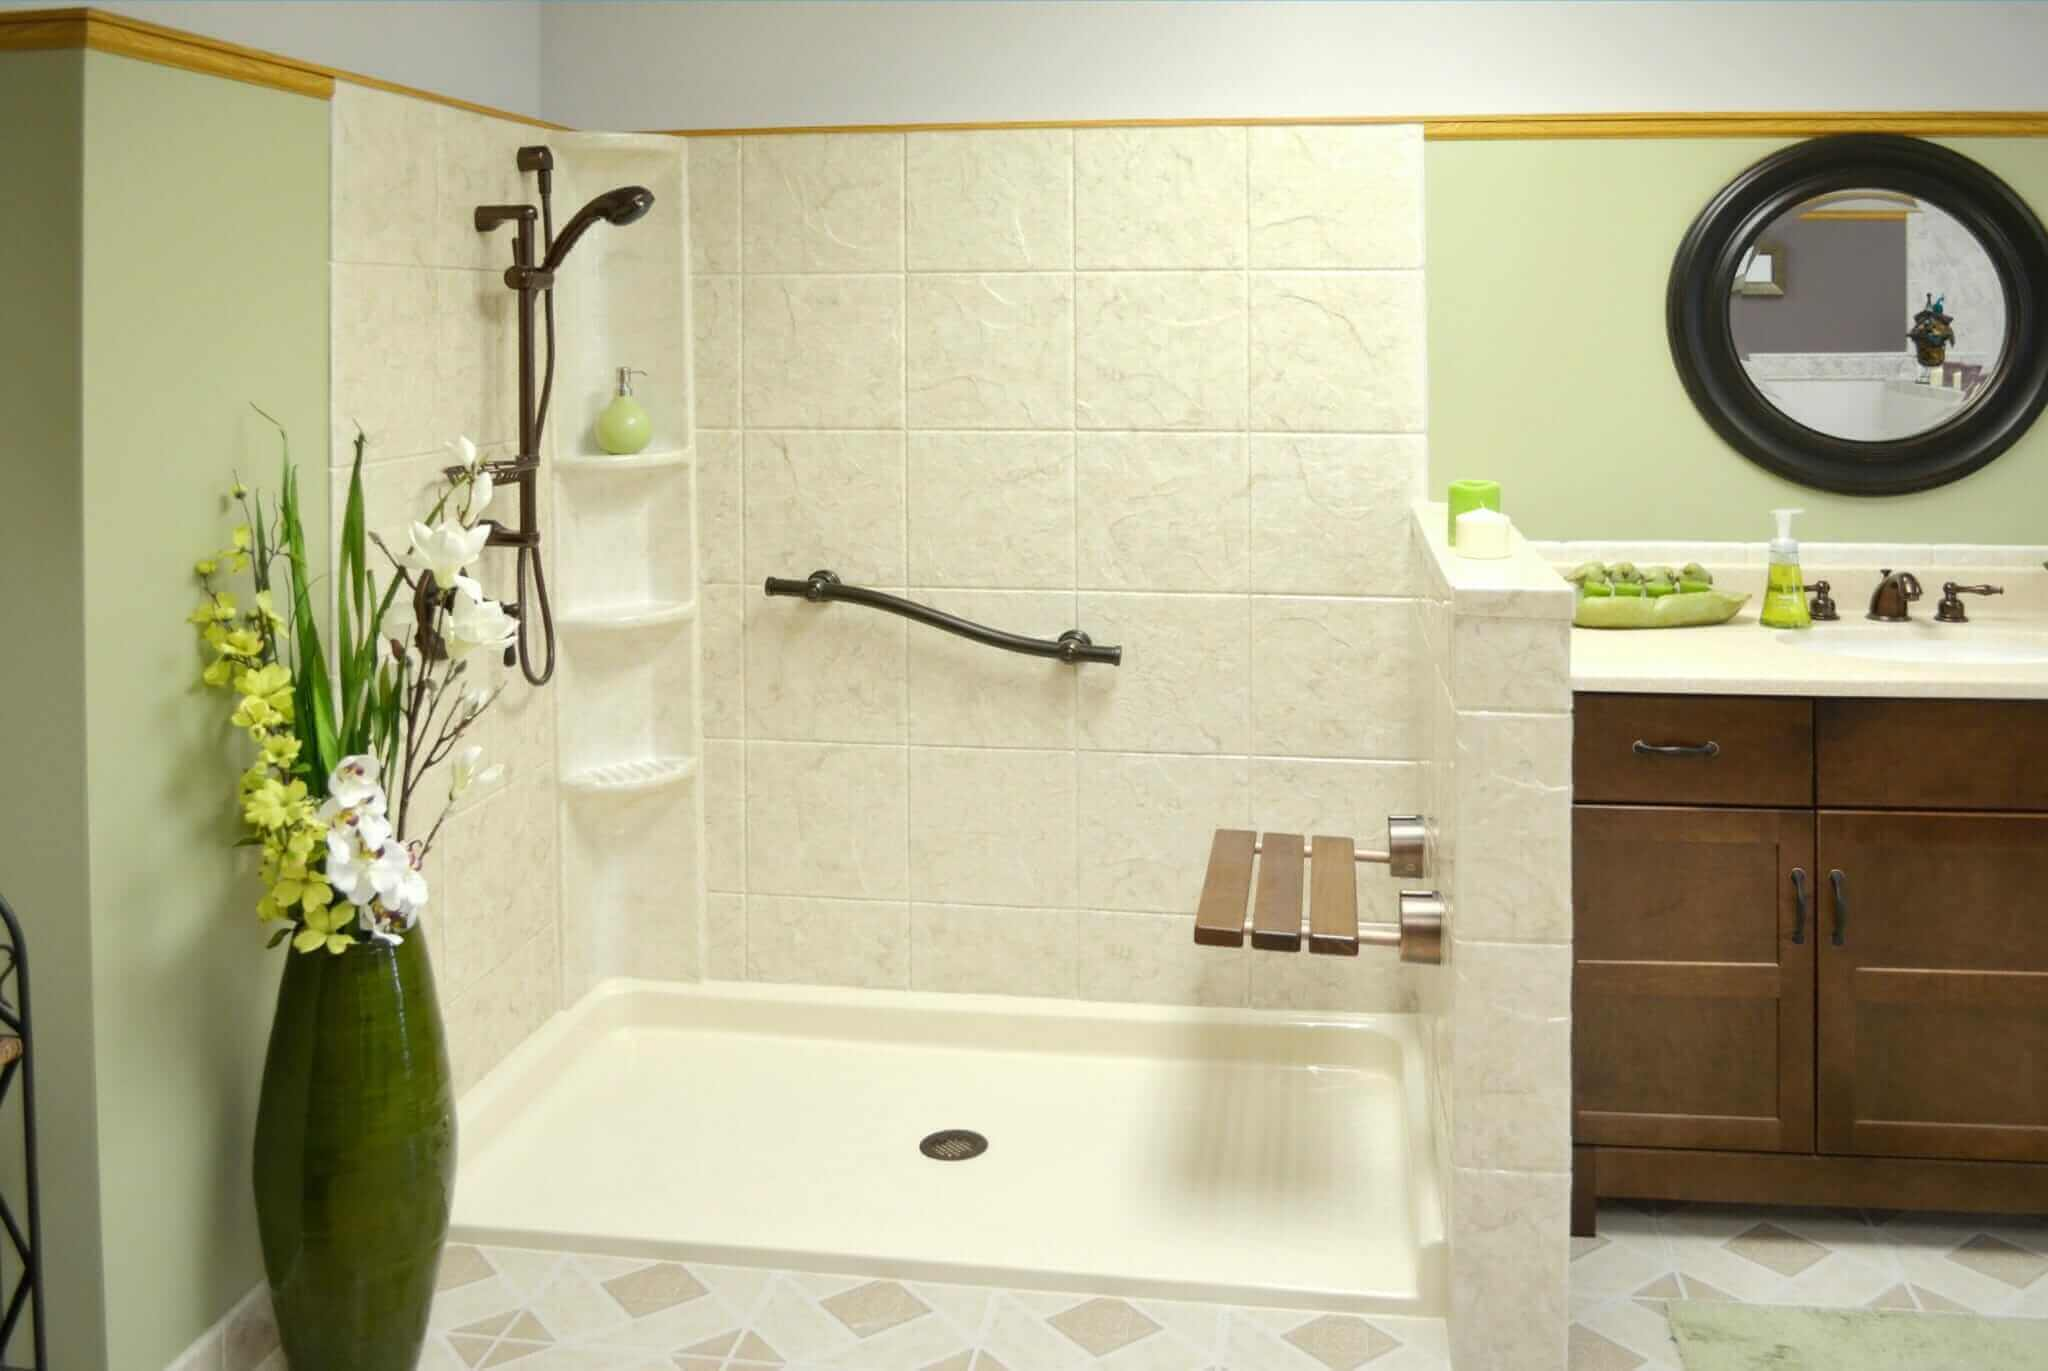 When to Install Safety Features in Your Bathroom